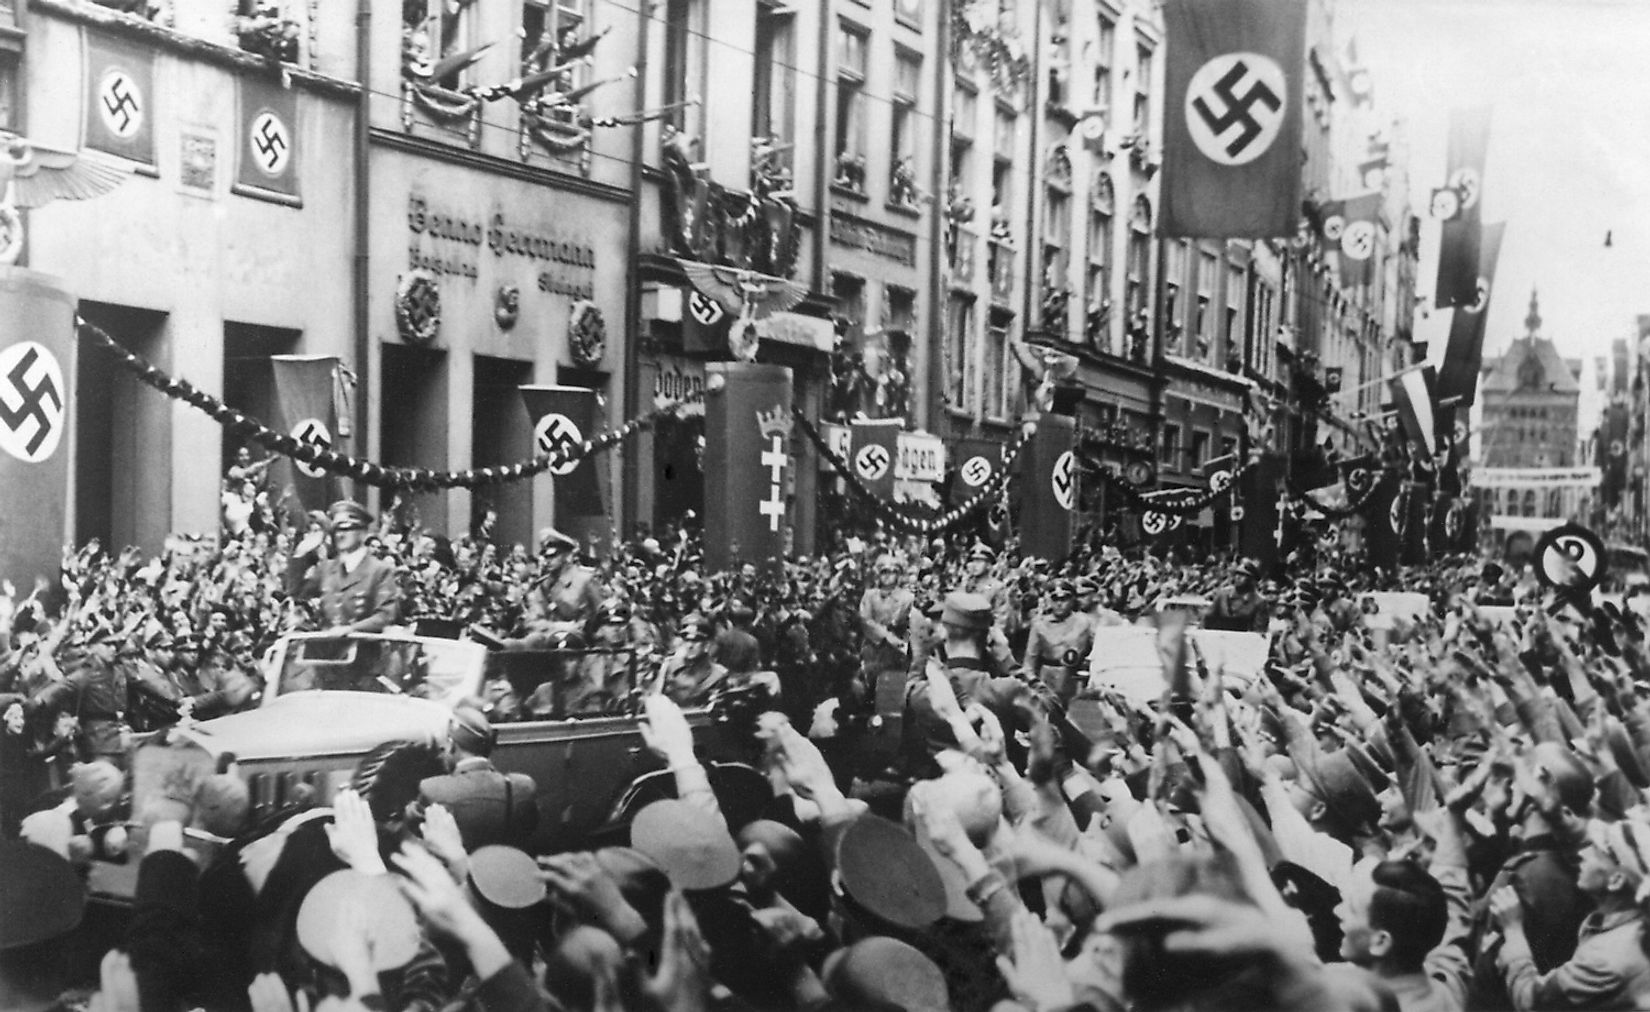 Danzig (Gdansk) greets the Fuhrer on Sept. 19, 1939. German Chancellor, Adolf Hitler receives Nazi Salutes as his rides in victory through Danzig. Image source: Everett Collection/Shutterstock.com